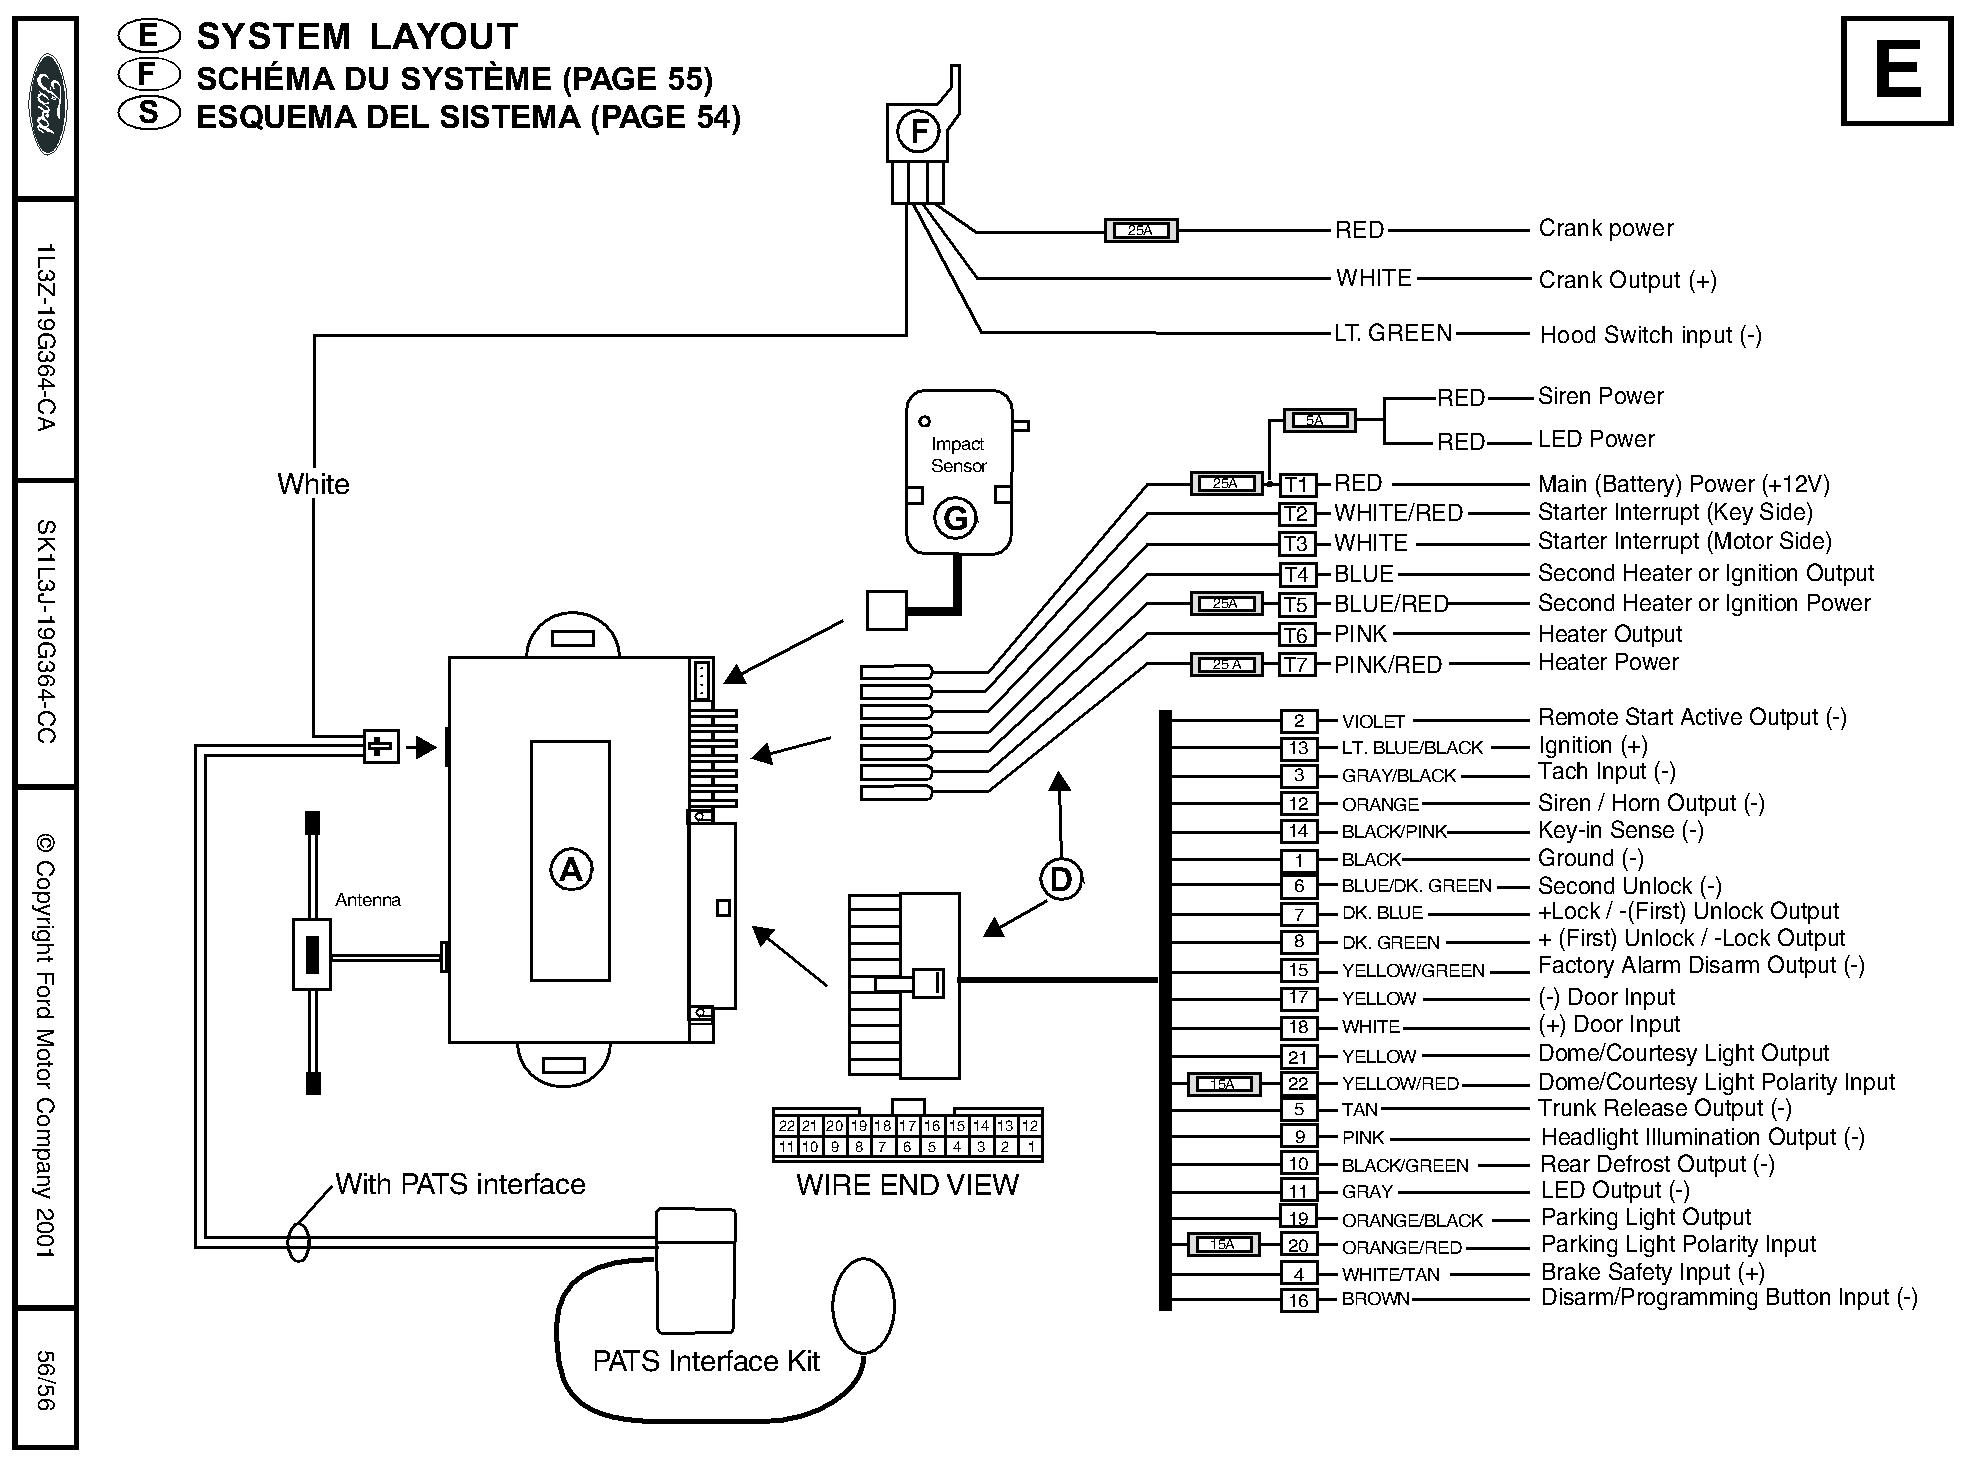 click on either wiring diagram below to view a larger version